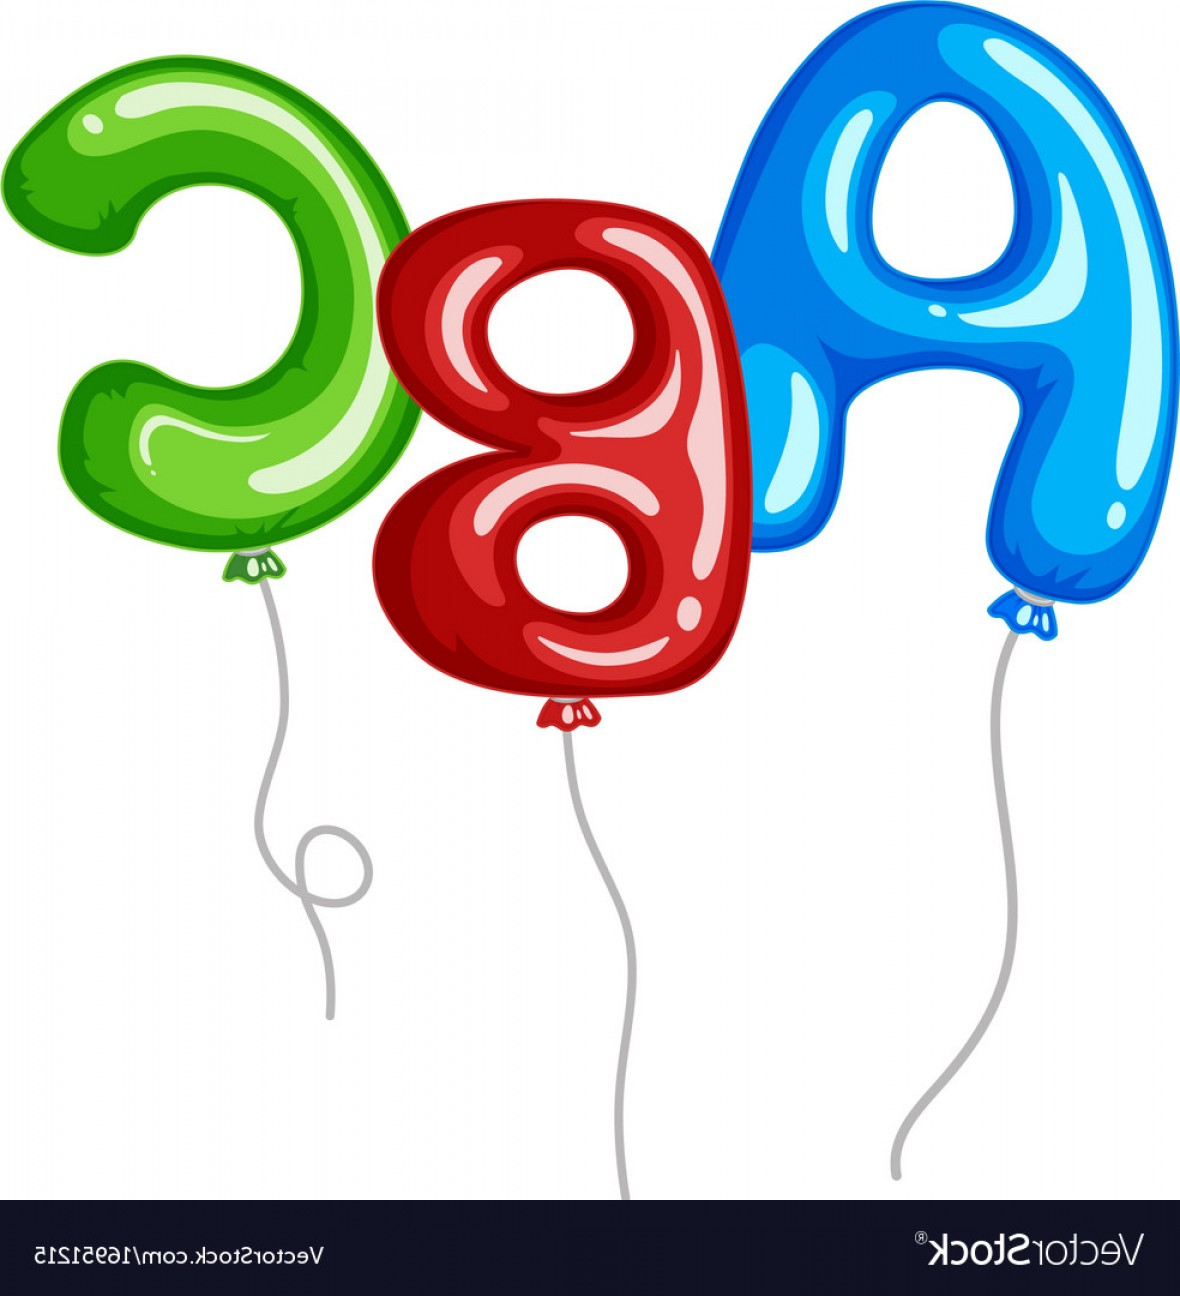 ABC Vectors: Balloons With Alphabets Shapes Abc Vector